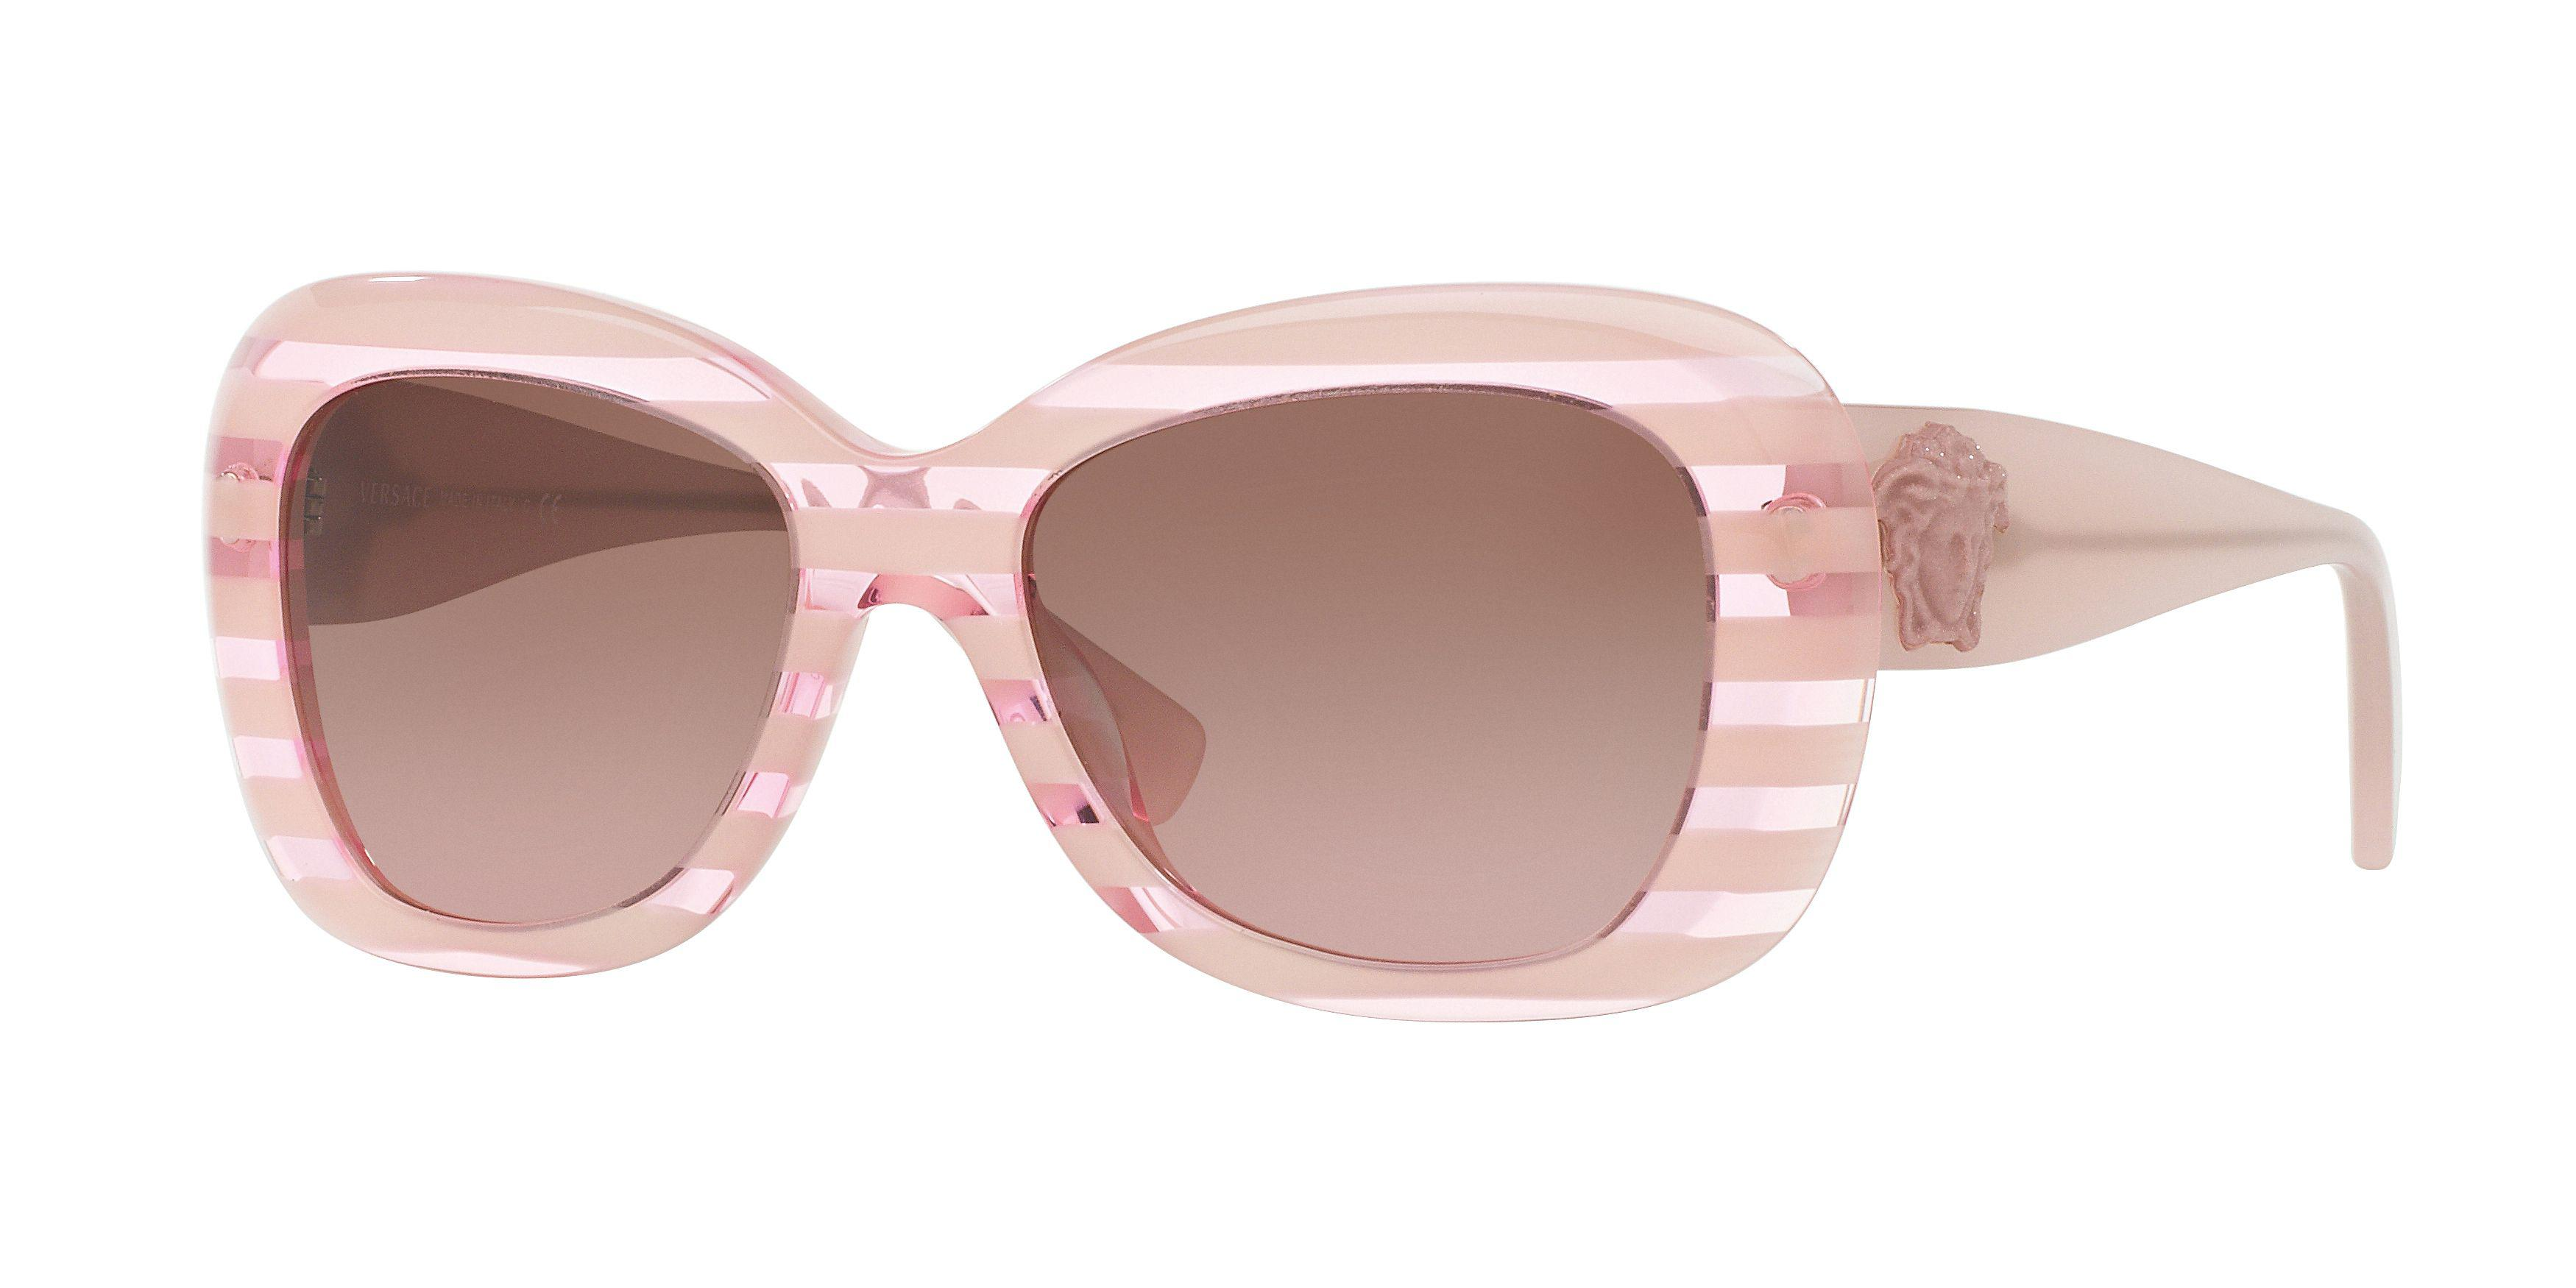 d2c3a249654 Lyst - Versace Ve4317 Sunglasses in Pink